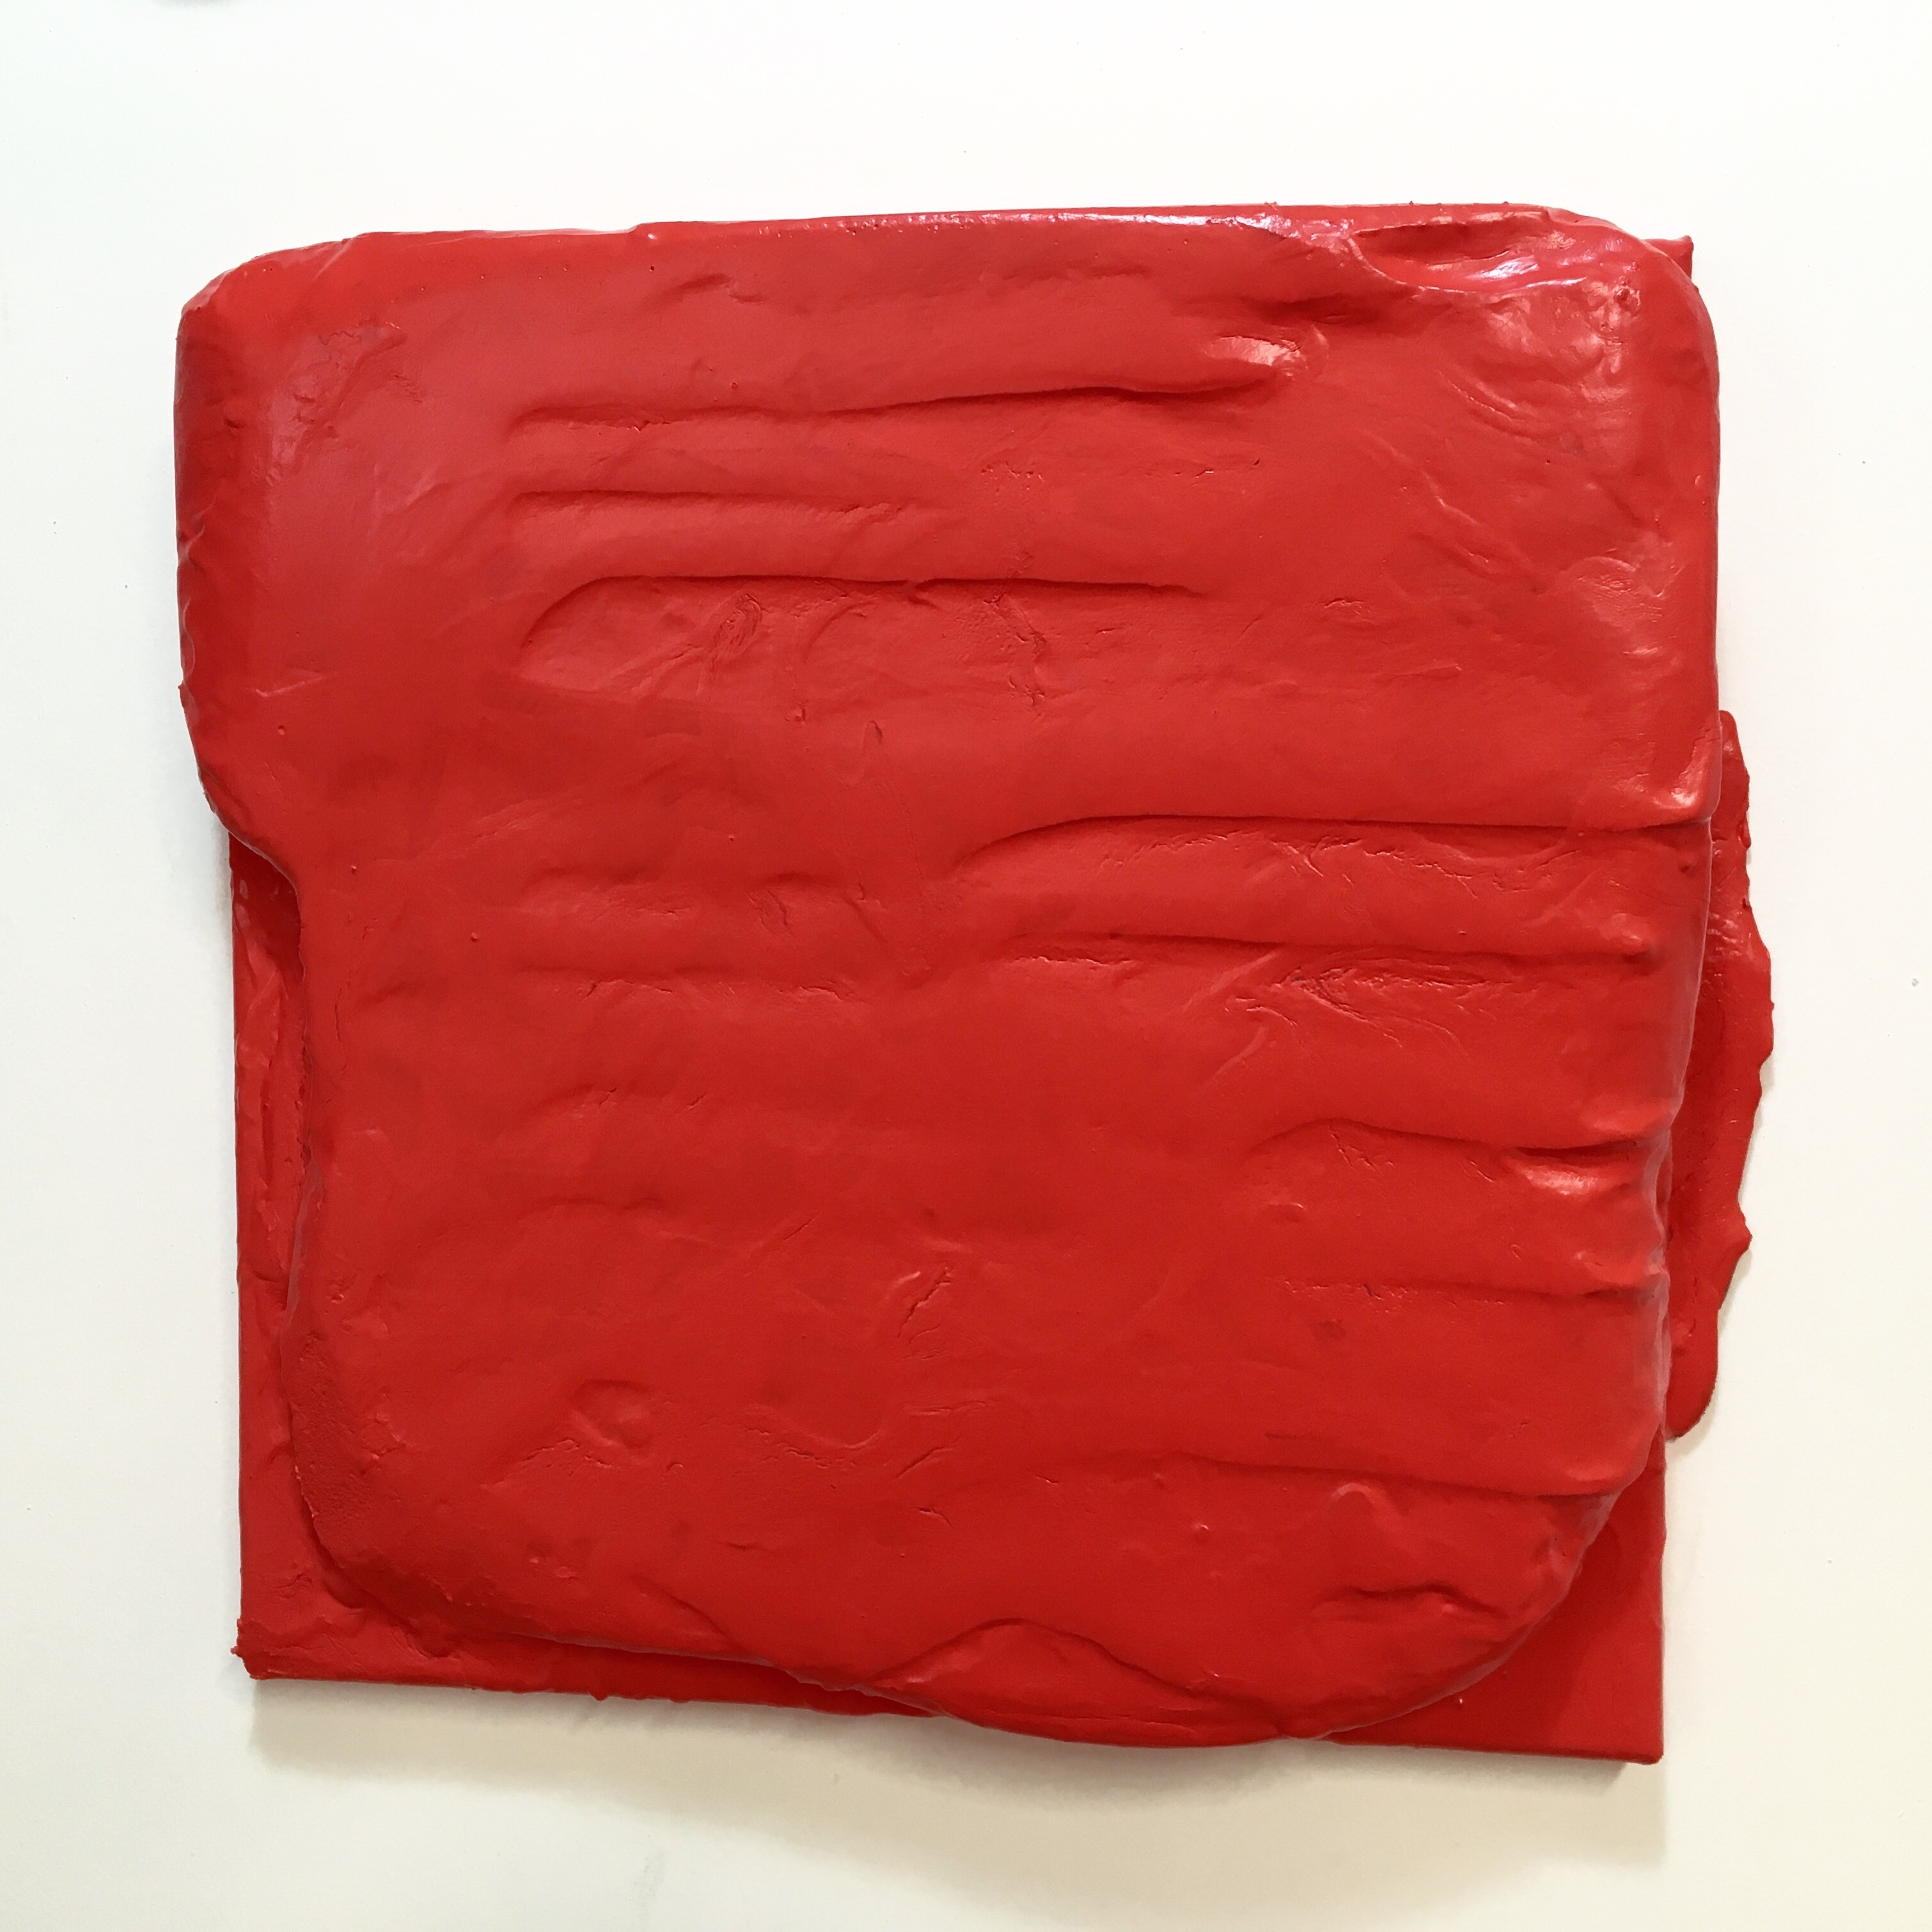 John Tallman, Untitled (red), latex paint on urethane plastic and bondo on canvas, 2017